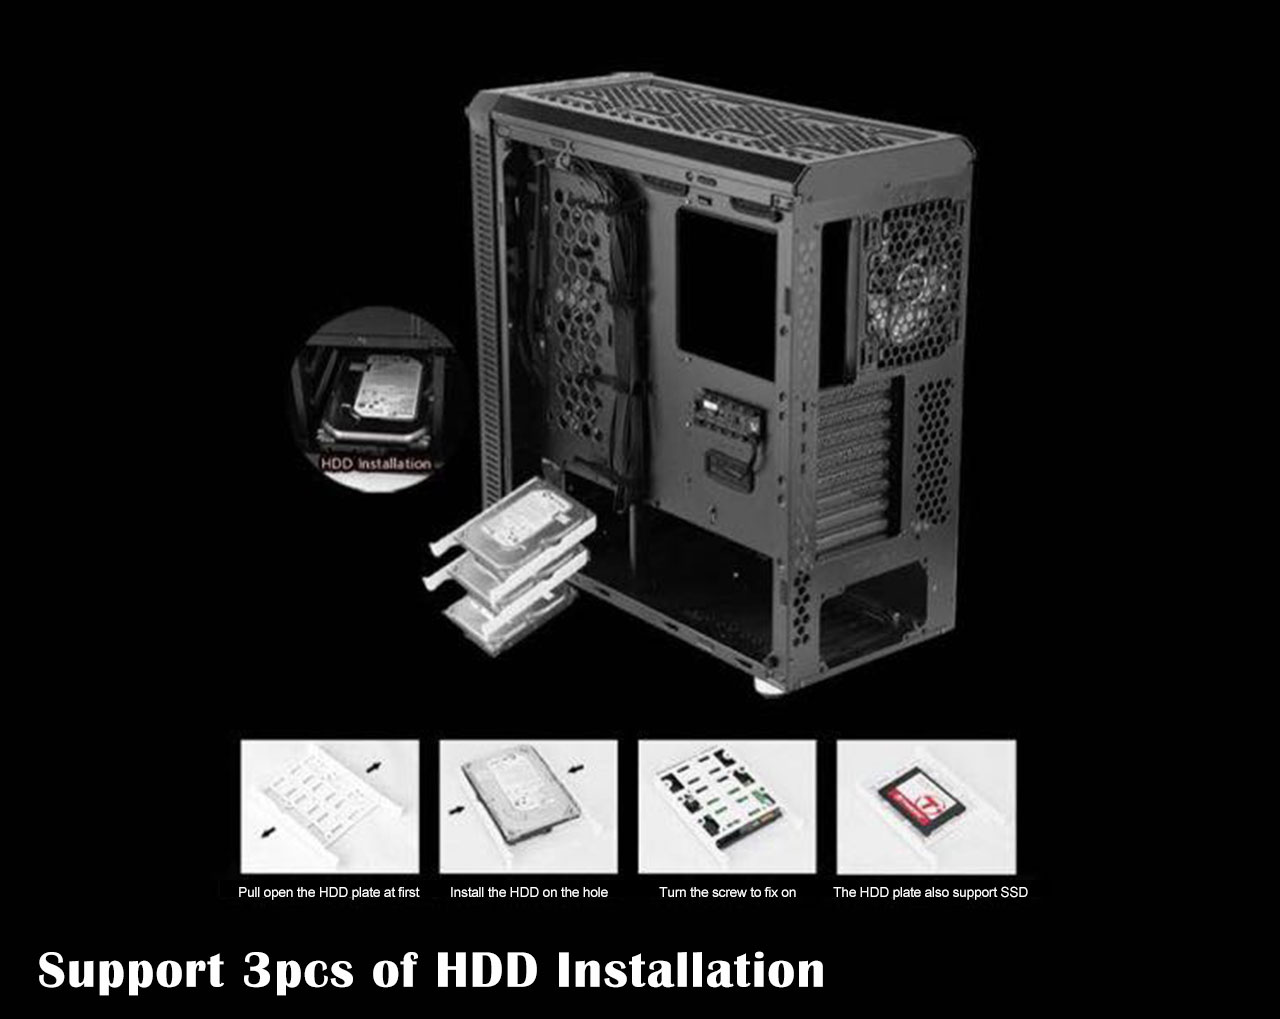 The case with its panels removed showing three separate HDDs in trays coming out of the case